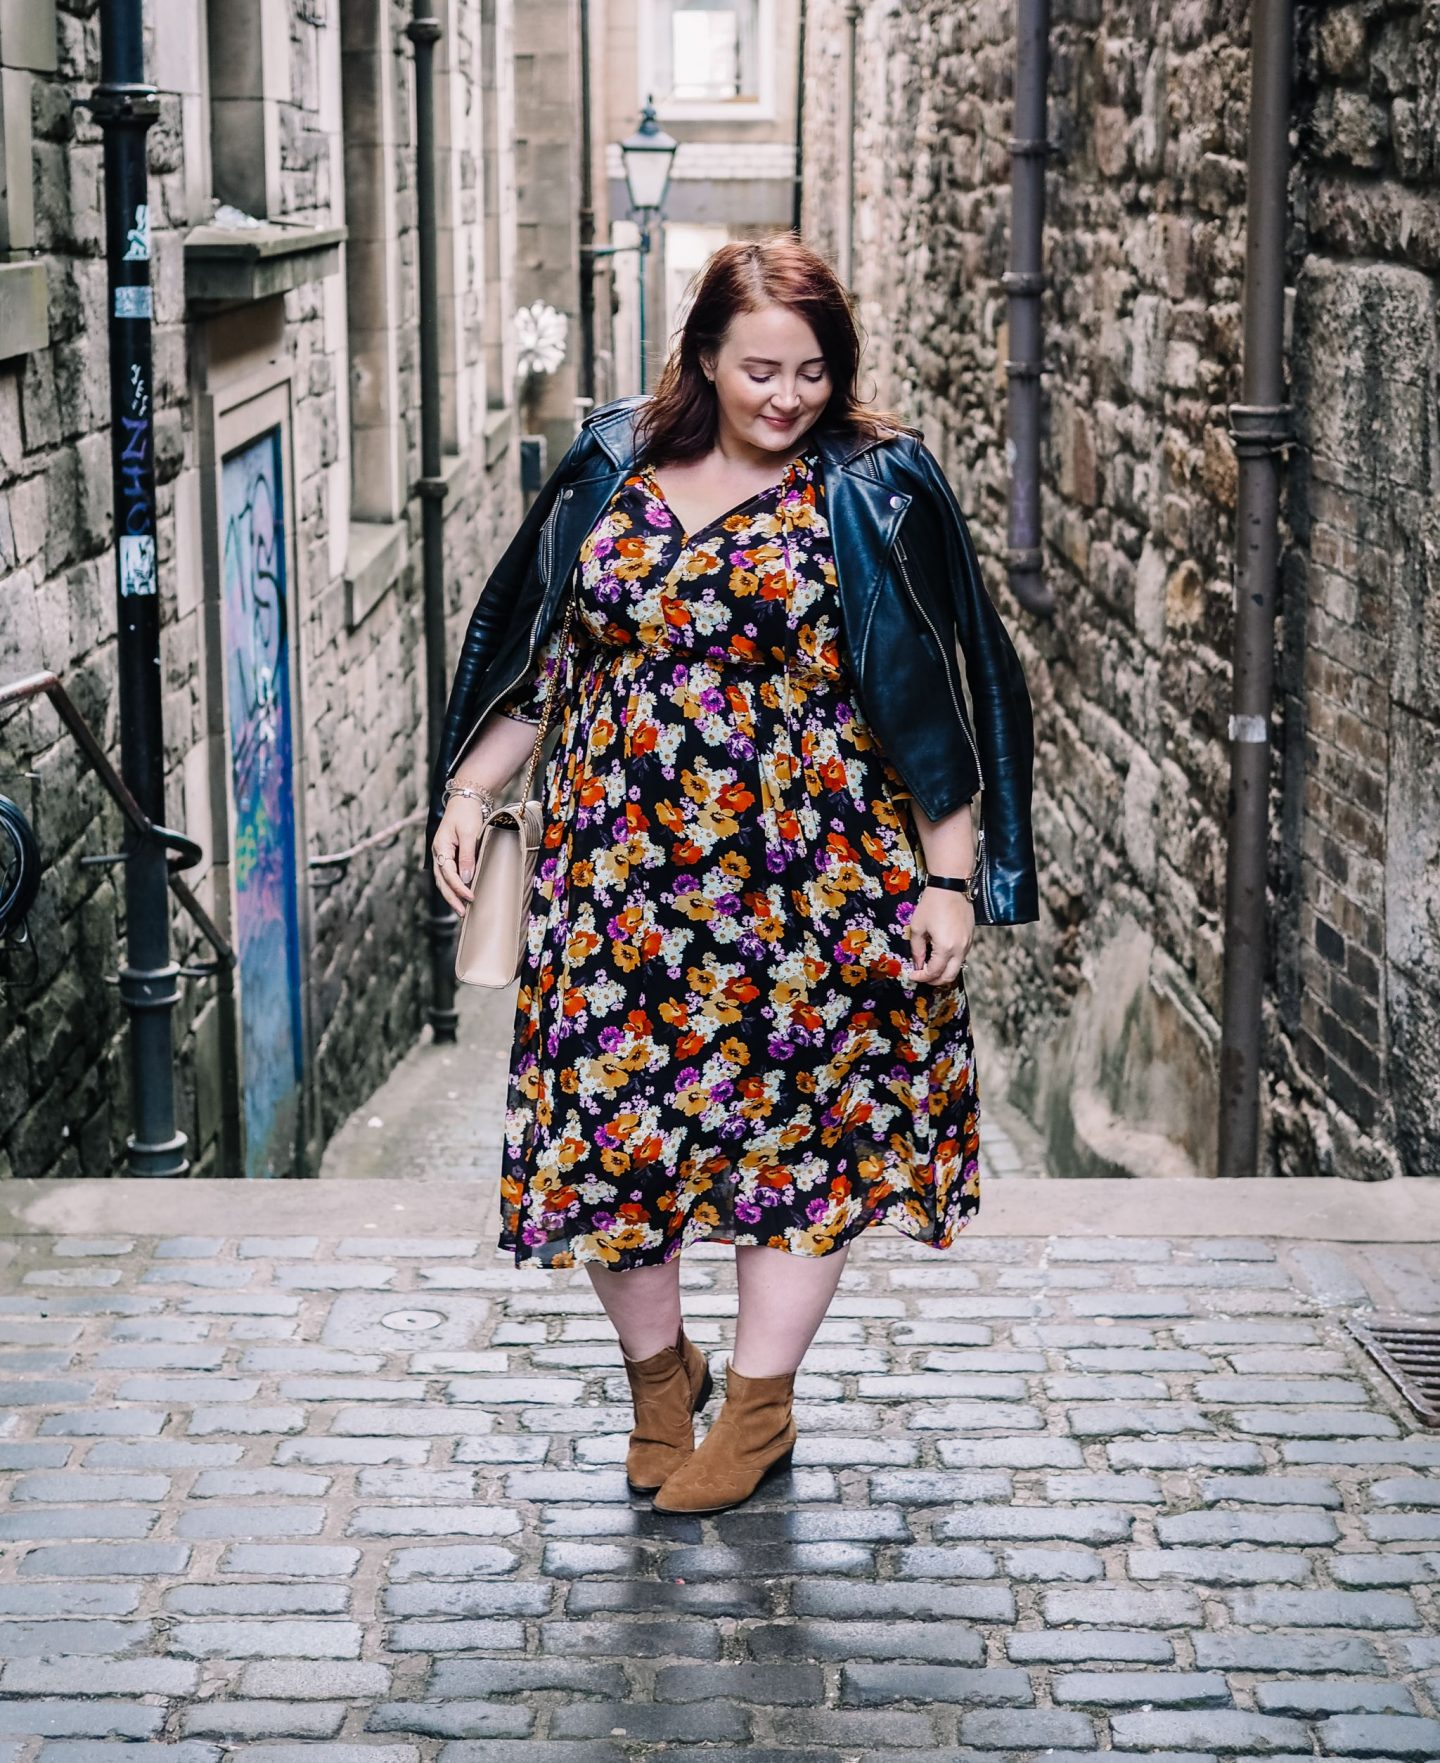 How To Wear Floral Dresses In Winter (Plus The Style That Suits Any Age Or Shape)